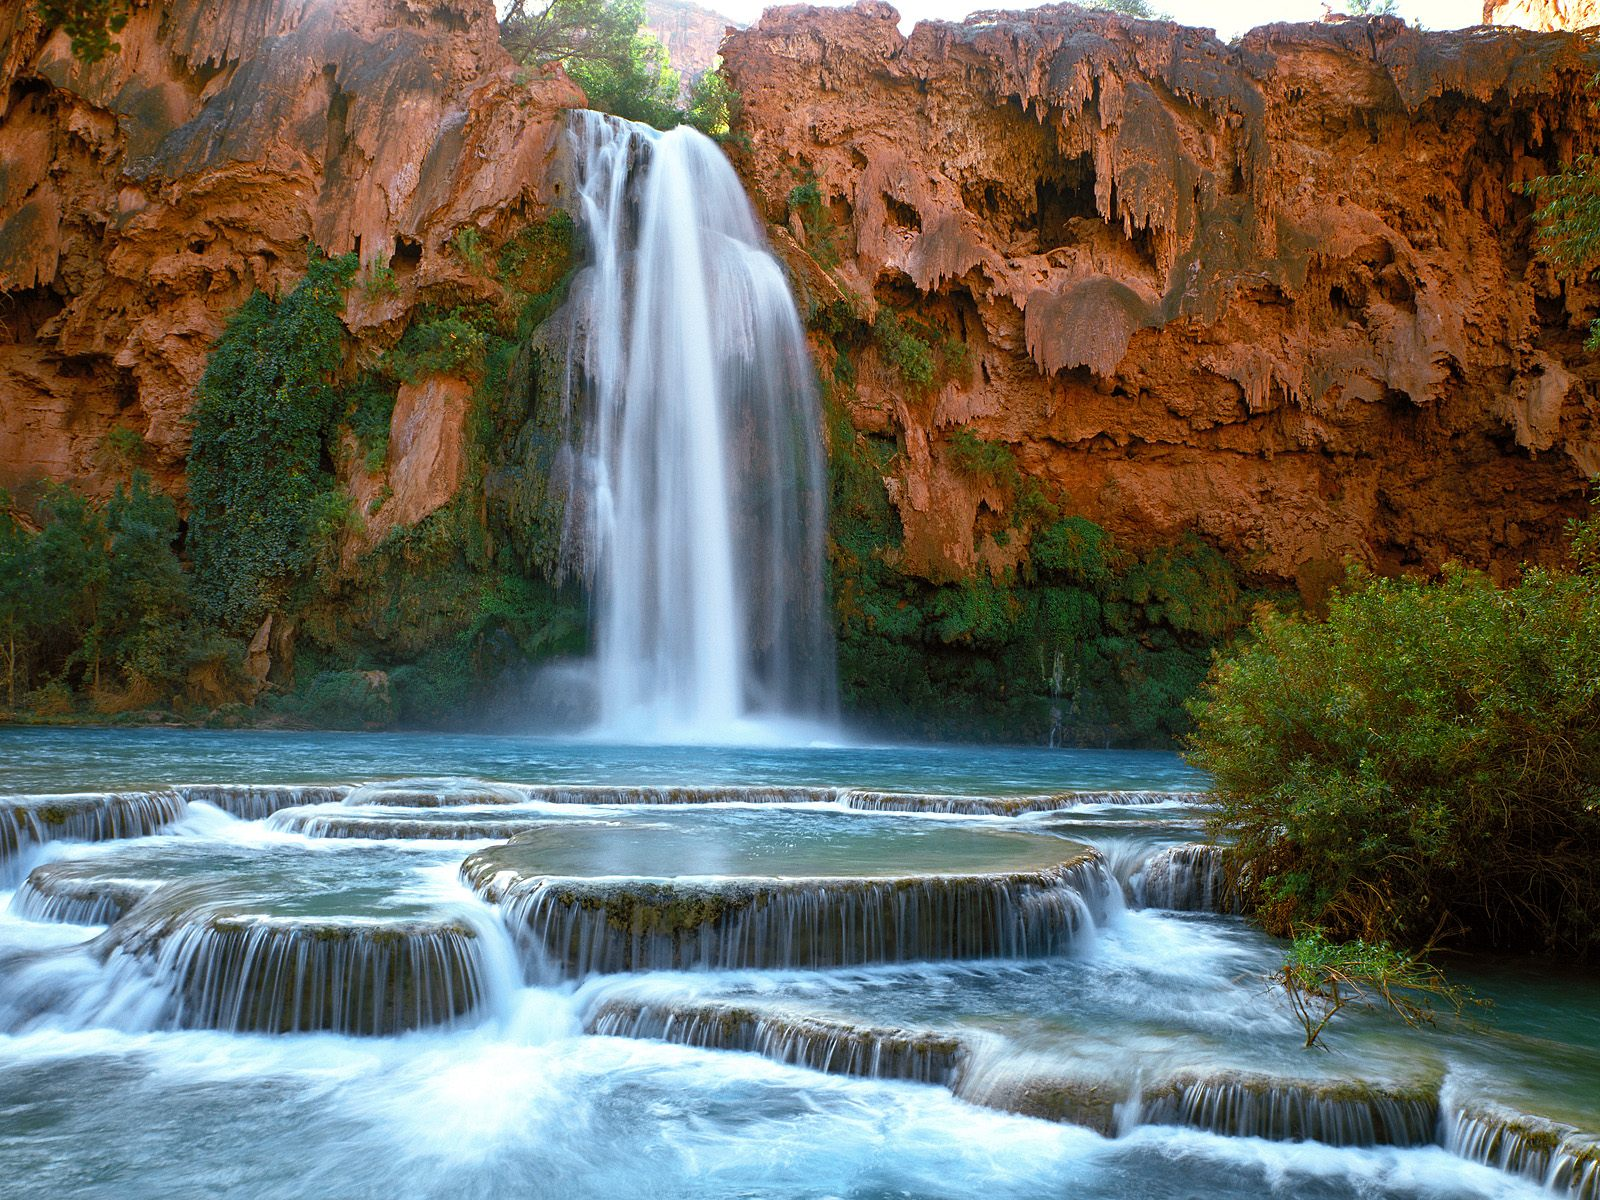 Backpacking havasupai falls adventure 2014 sold out